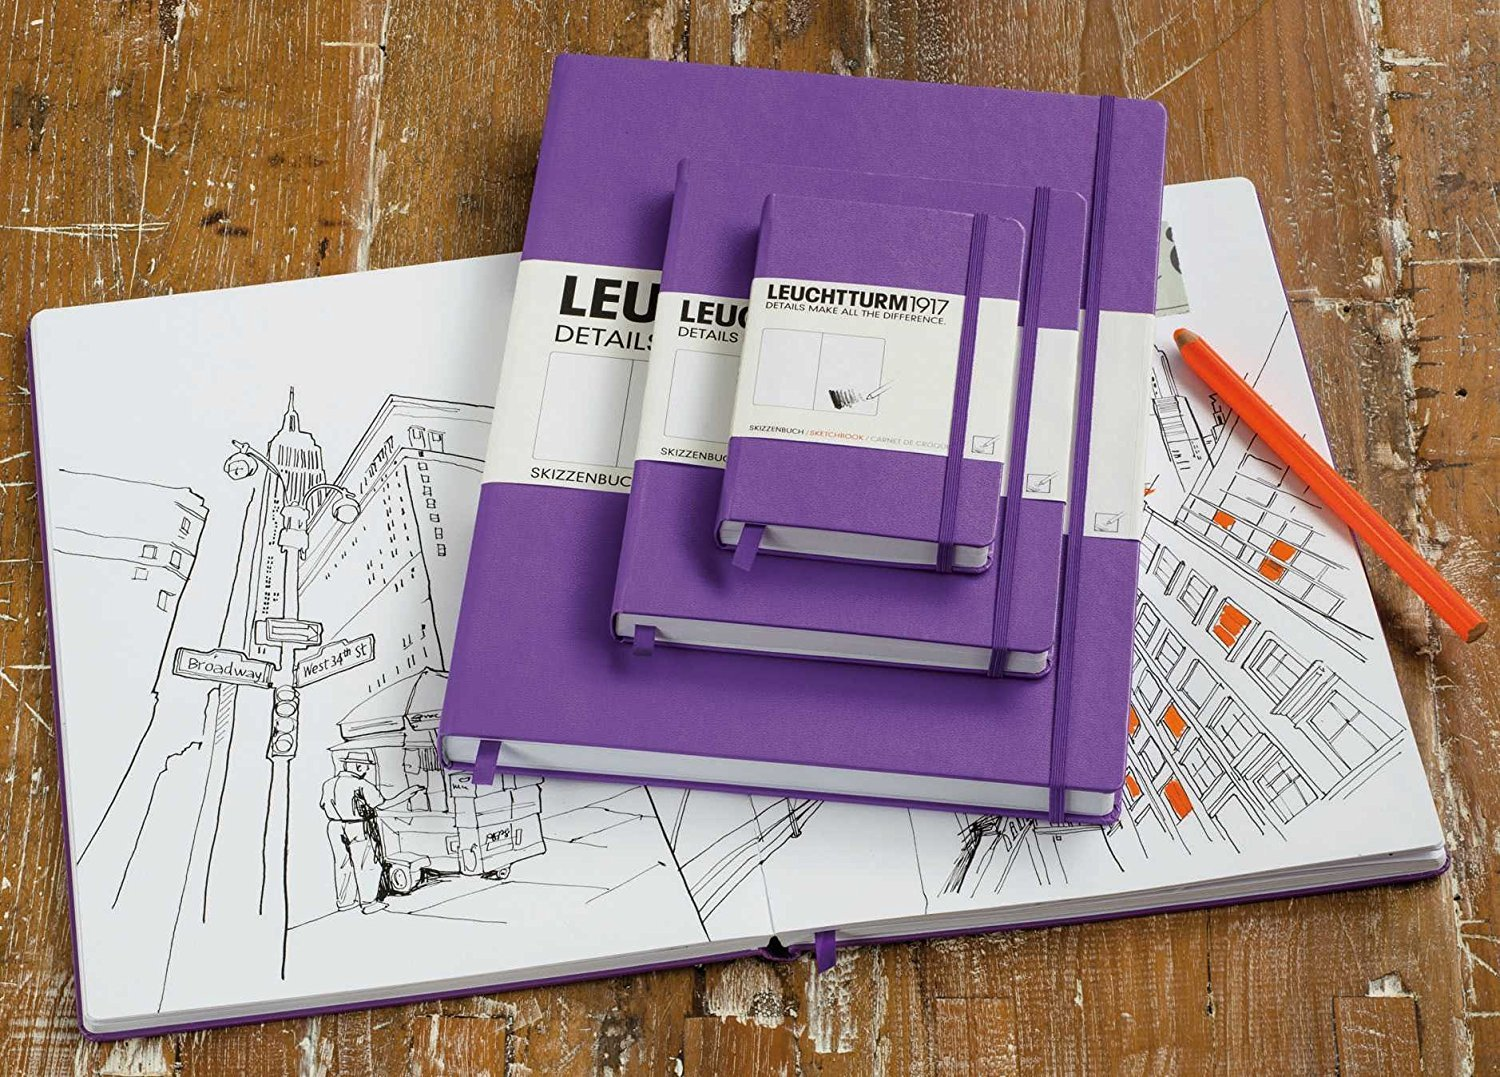 Leuchtturm1917 A4+ Master Hardcover Sketchbook, 8.85 X 12.5 inches, 96 Pages of 180g Brilliant White Plain Paper, Orange (345004) by LEUCHTTURM1917 (Image #4)